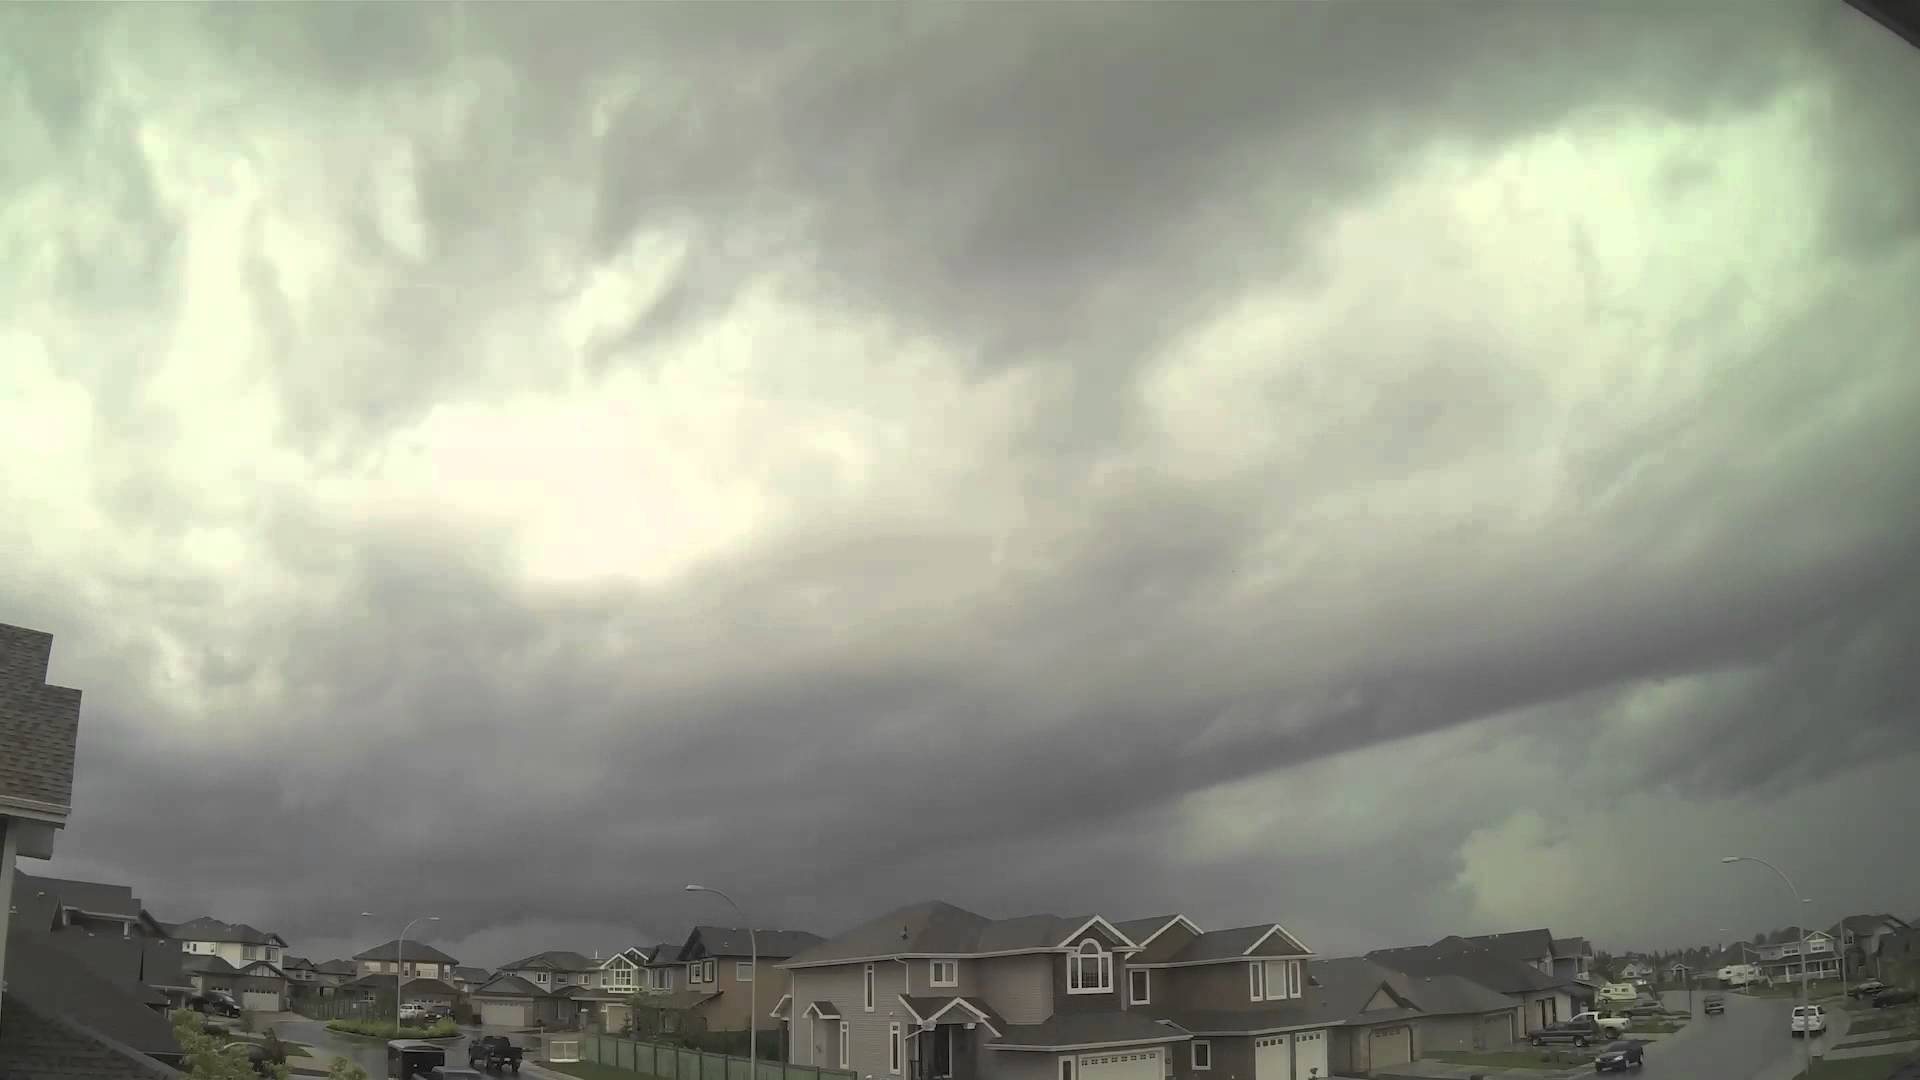 Stunning storm clouds blast through Sherwood Park - June 12 - YouTube